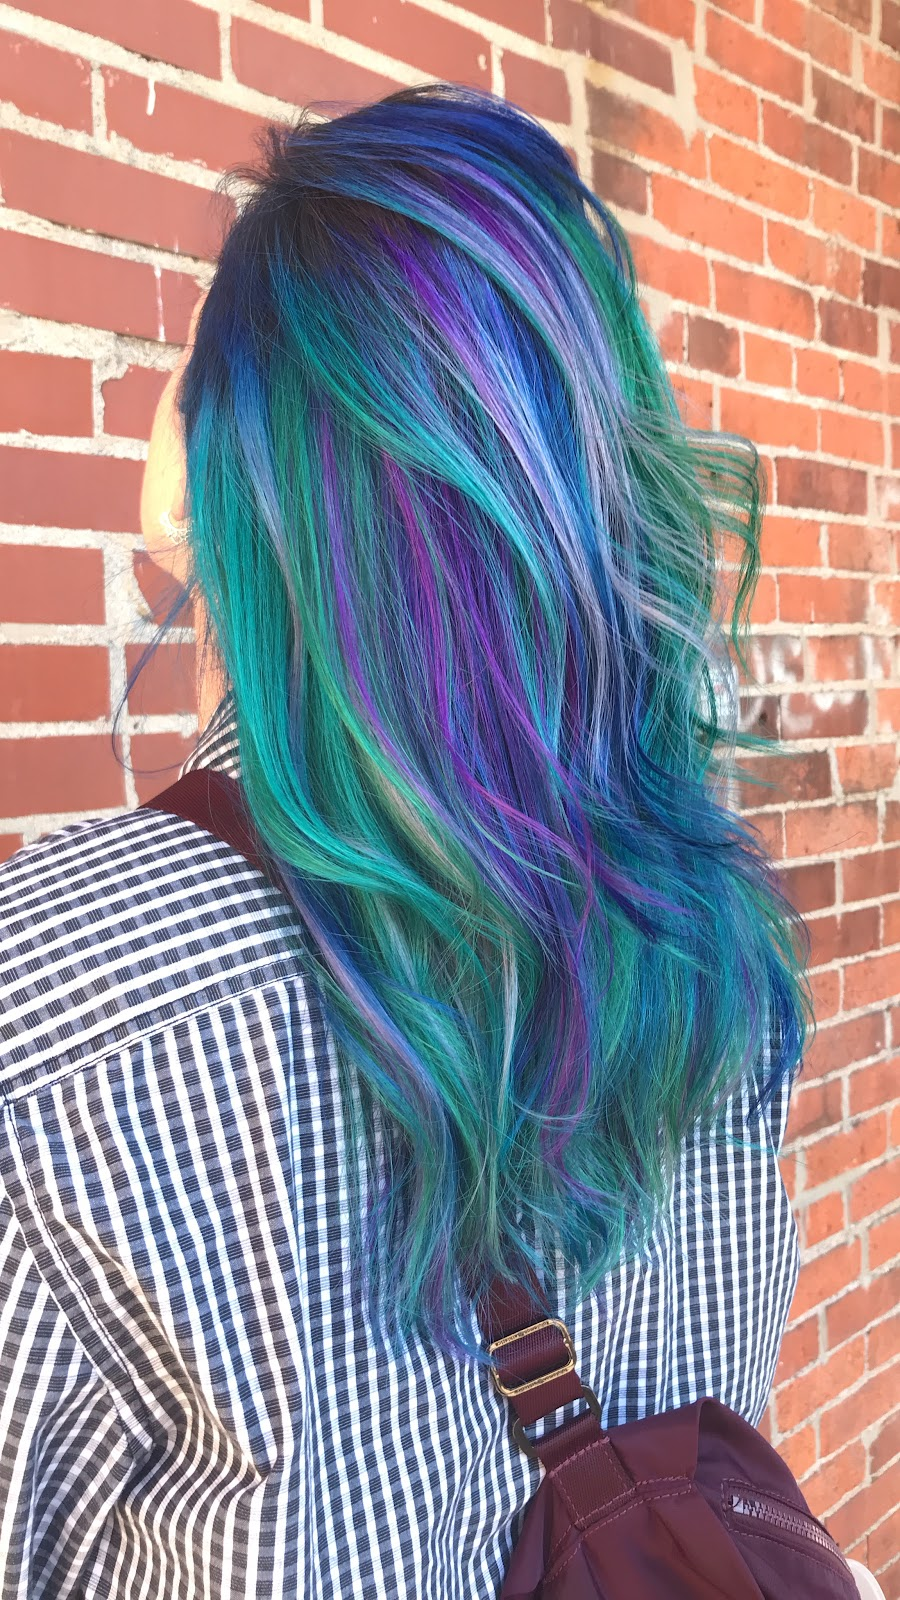 @aerialdowdy Dimensional, cool mermaid hair using PulpRiot at Philosophi Salon in Columbus, Ohio